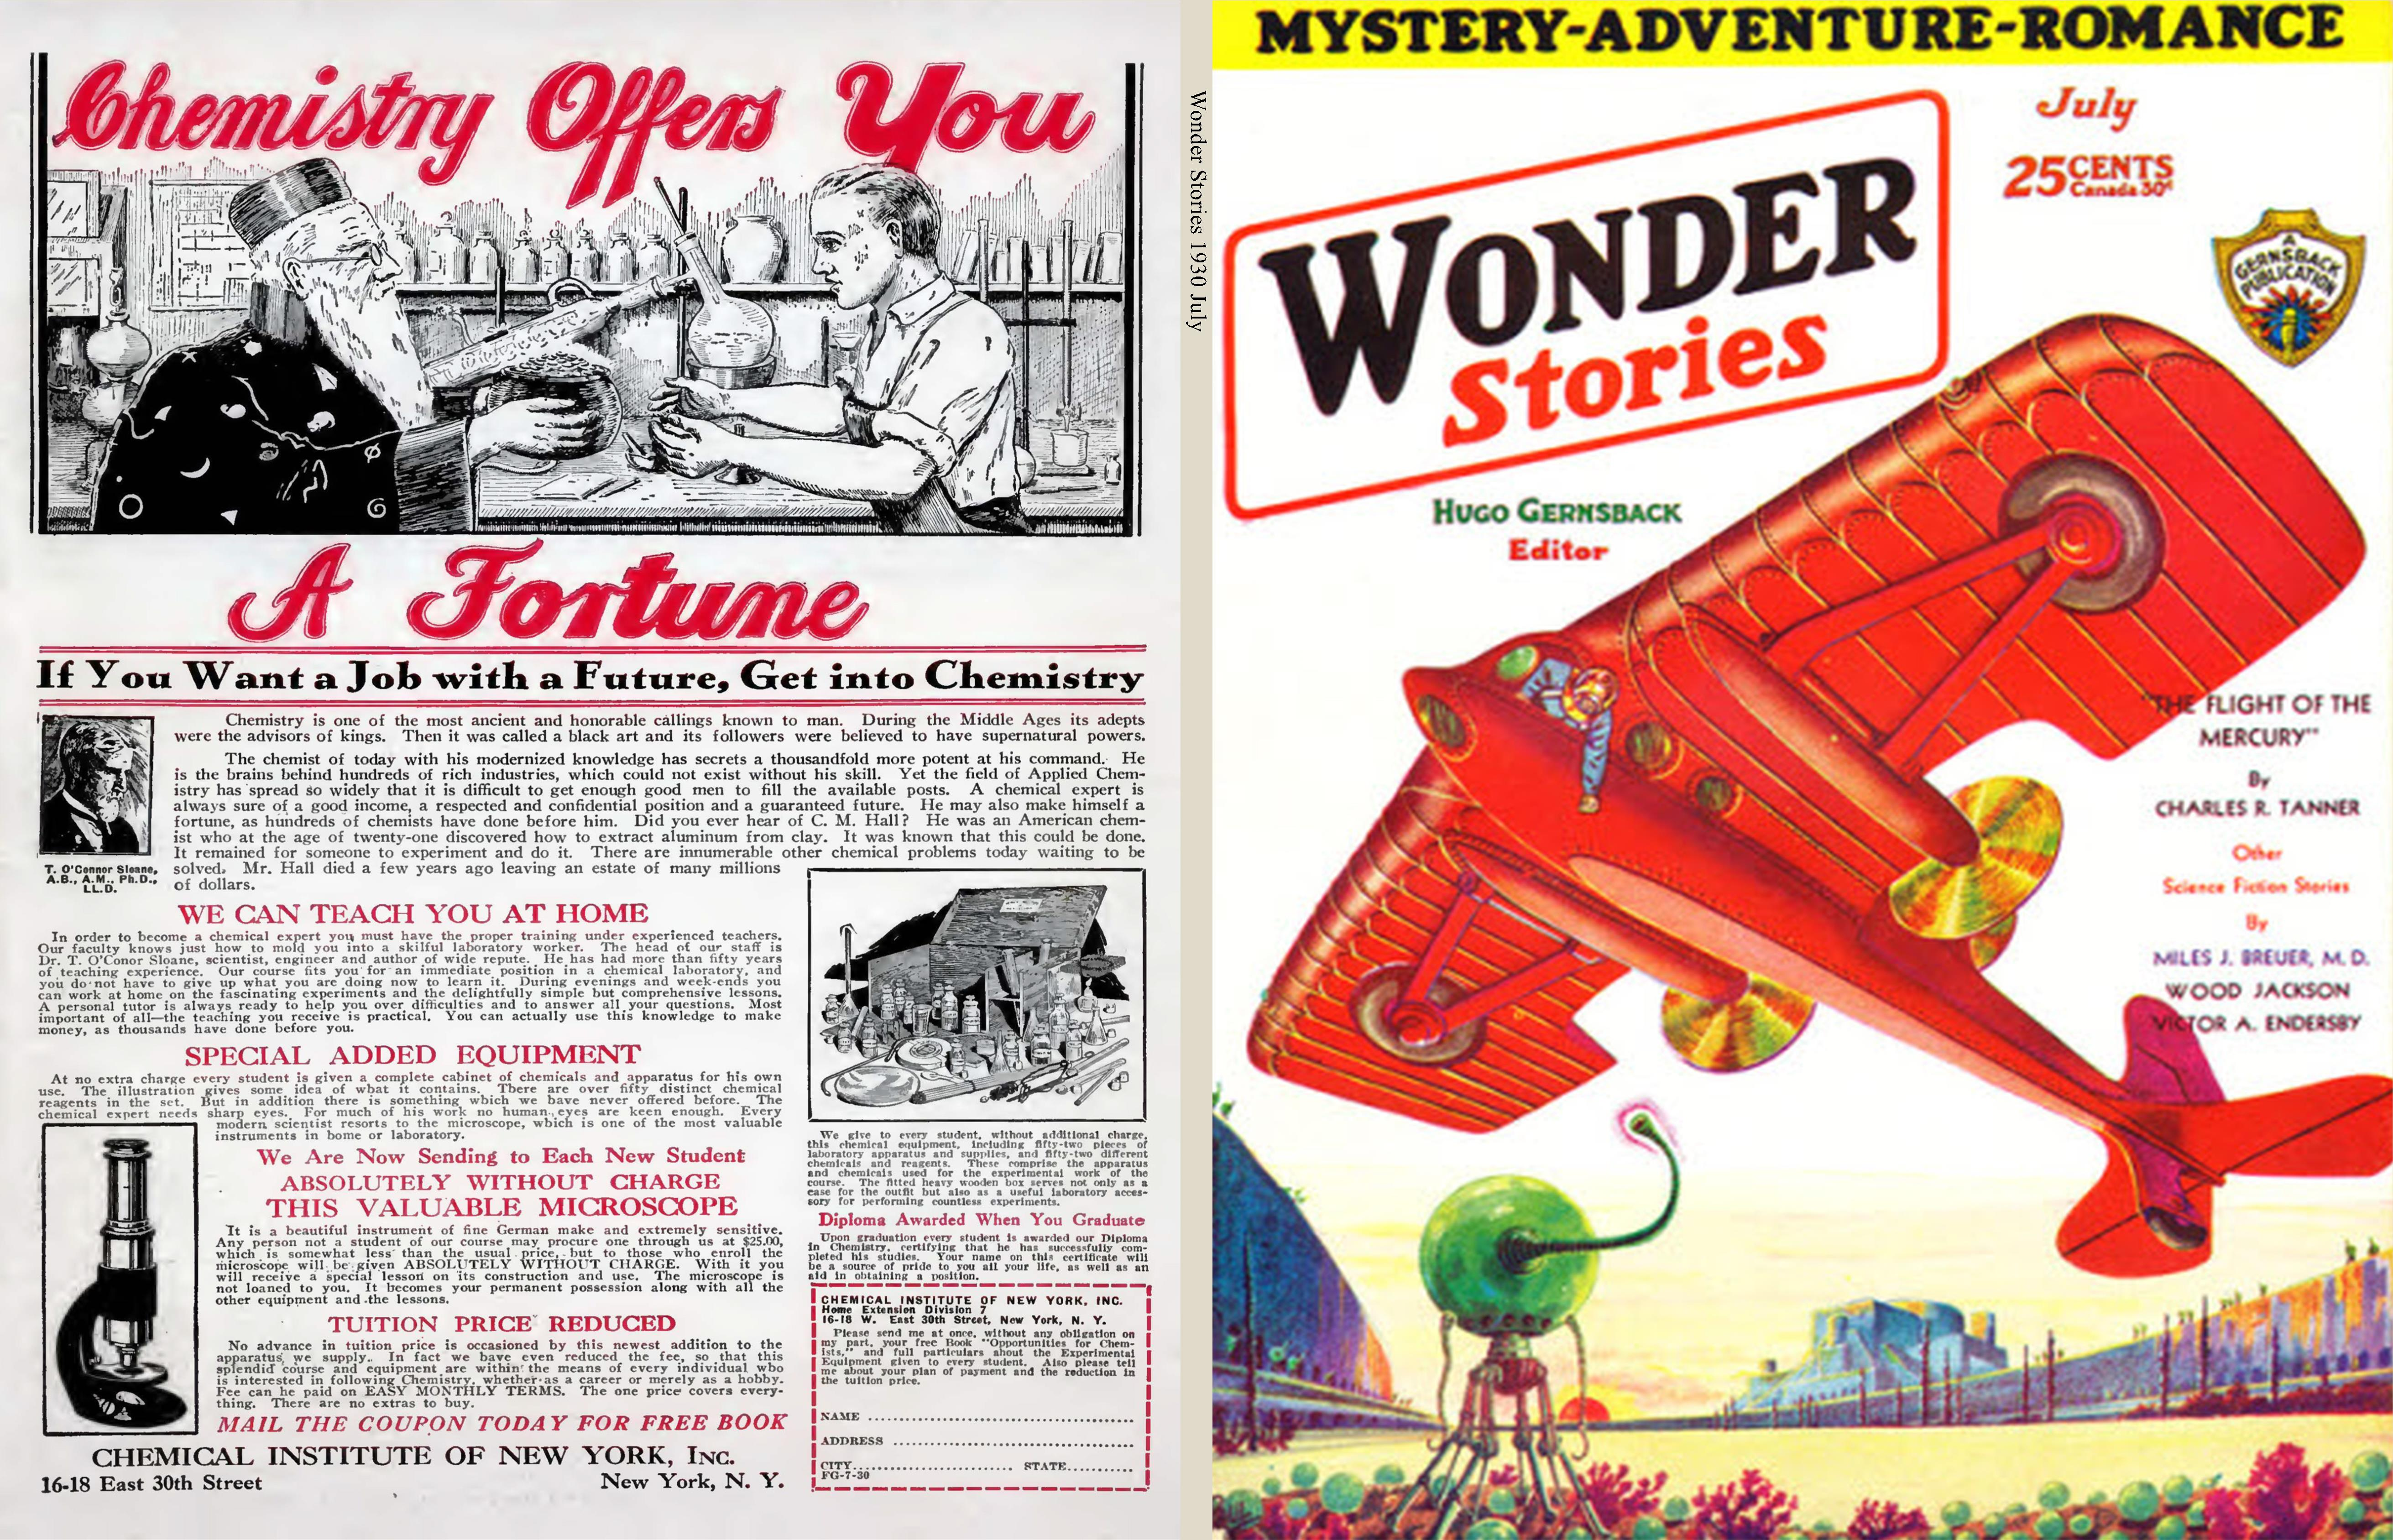 Wonder Stories 1930 July cover image